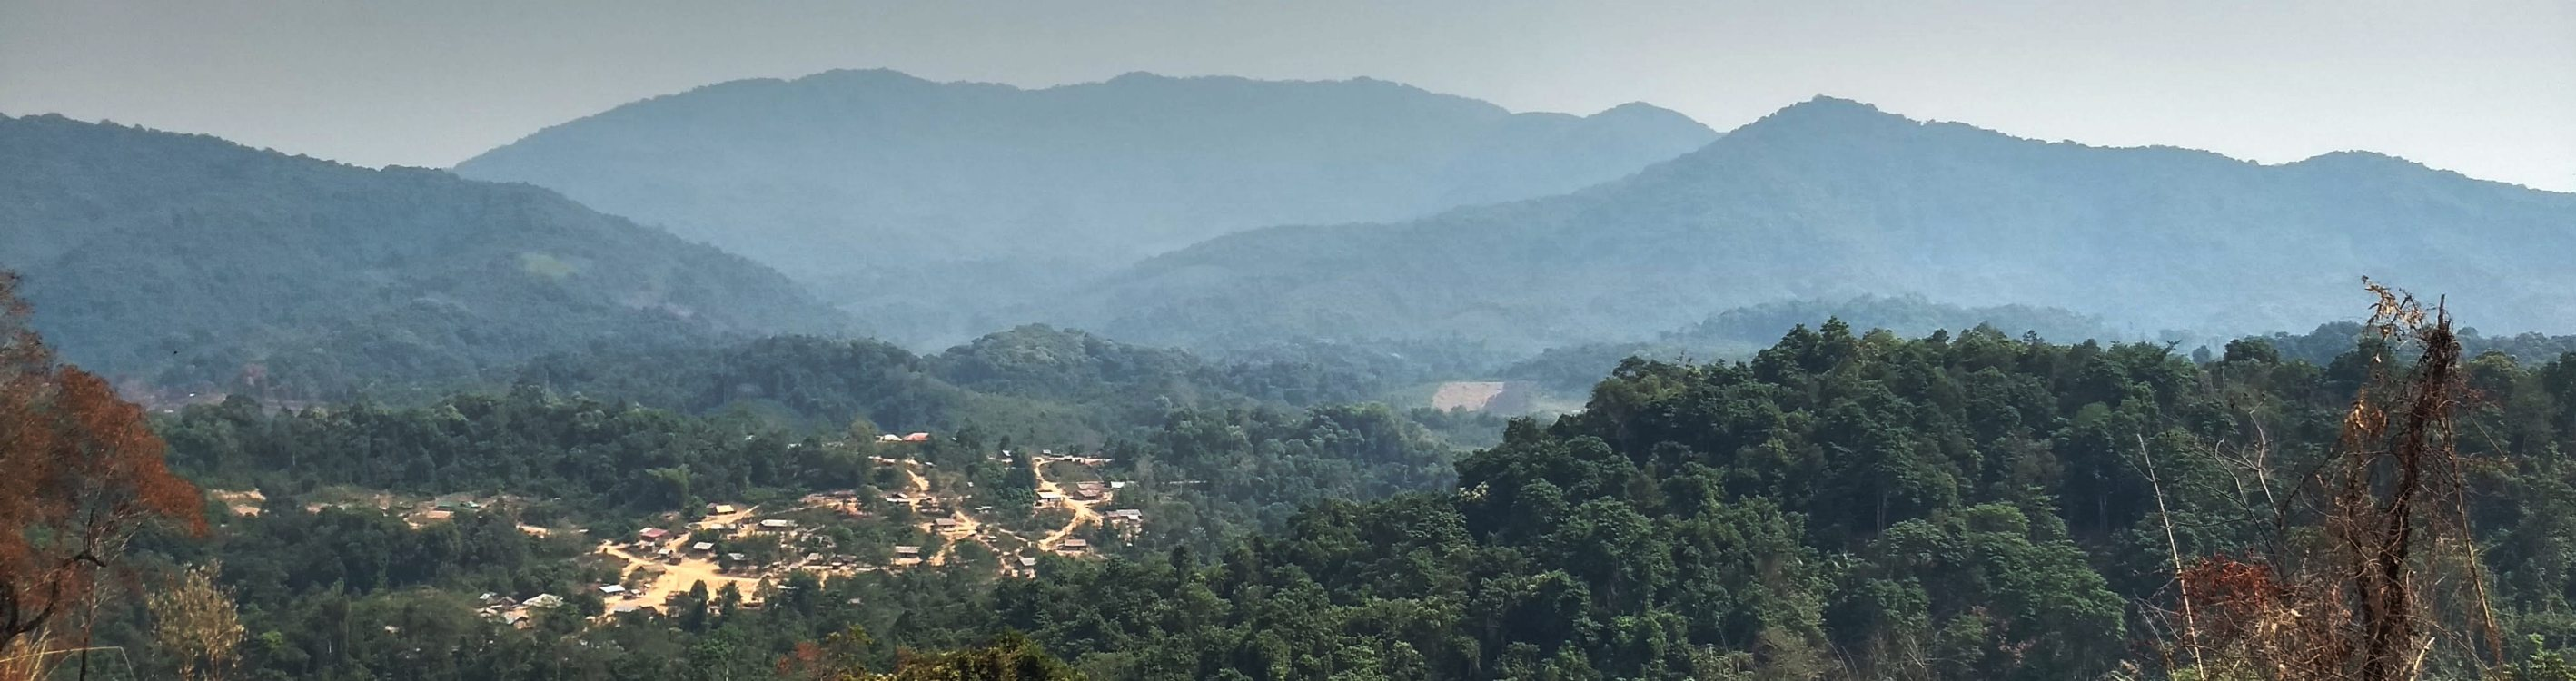 Die Nam Ha National Protected Area in Laos.